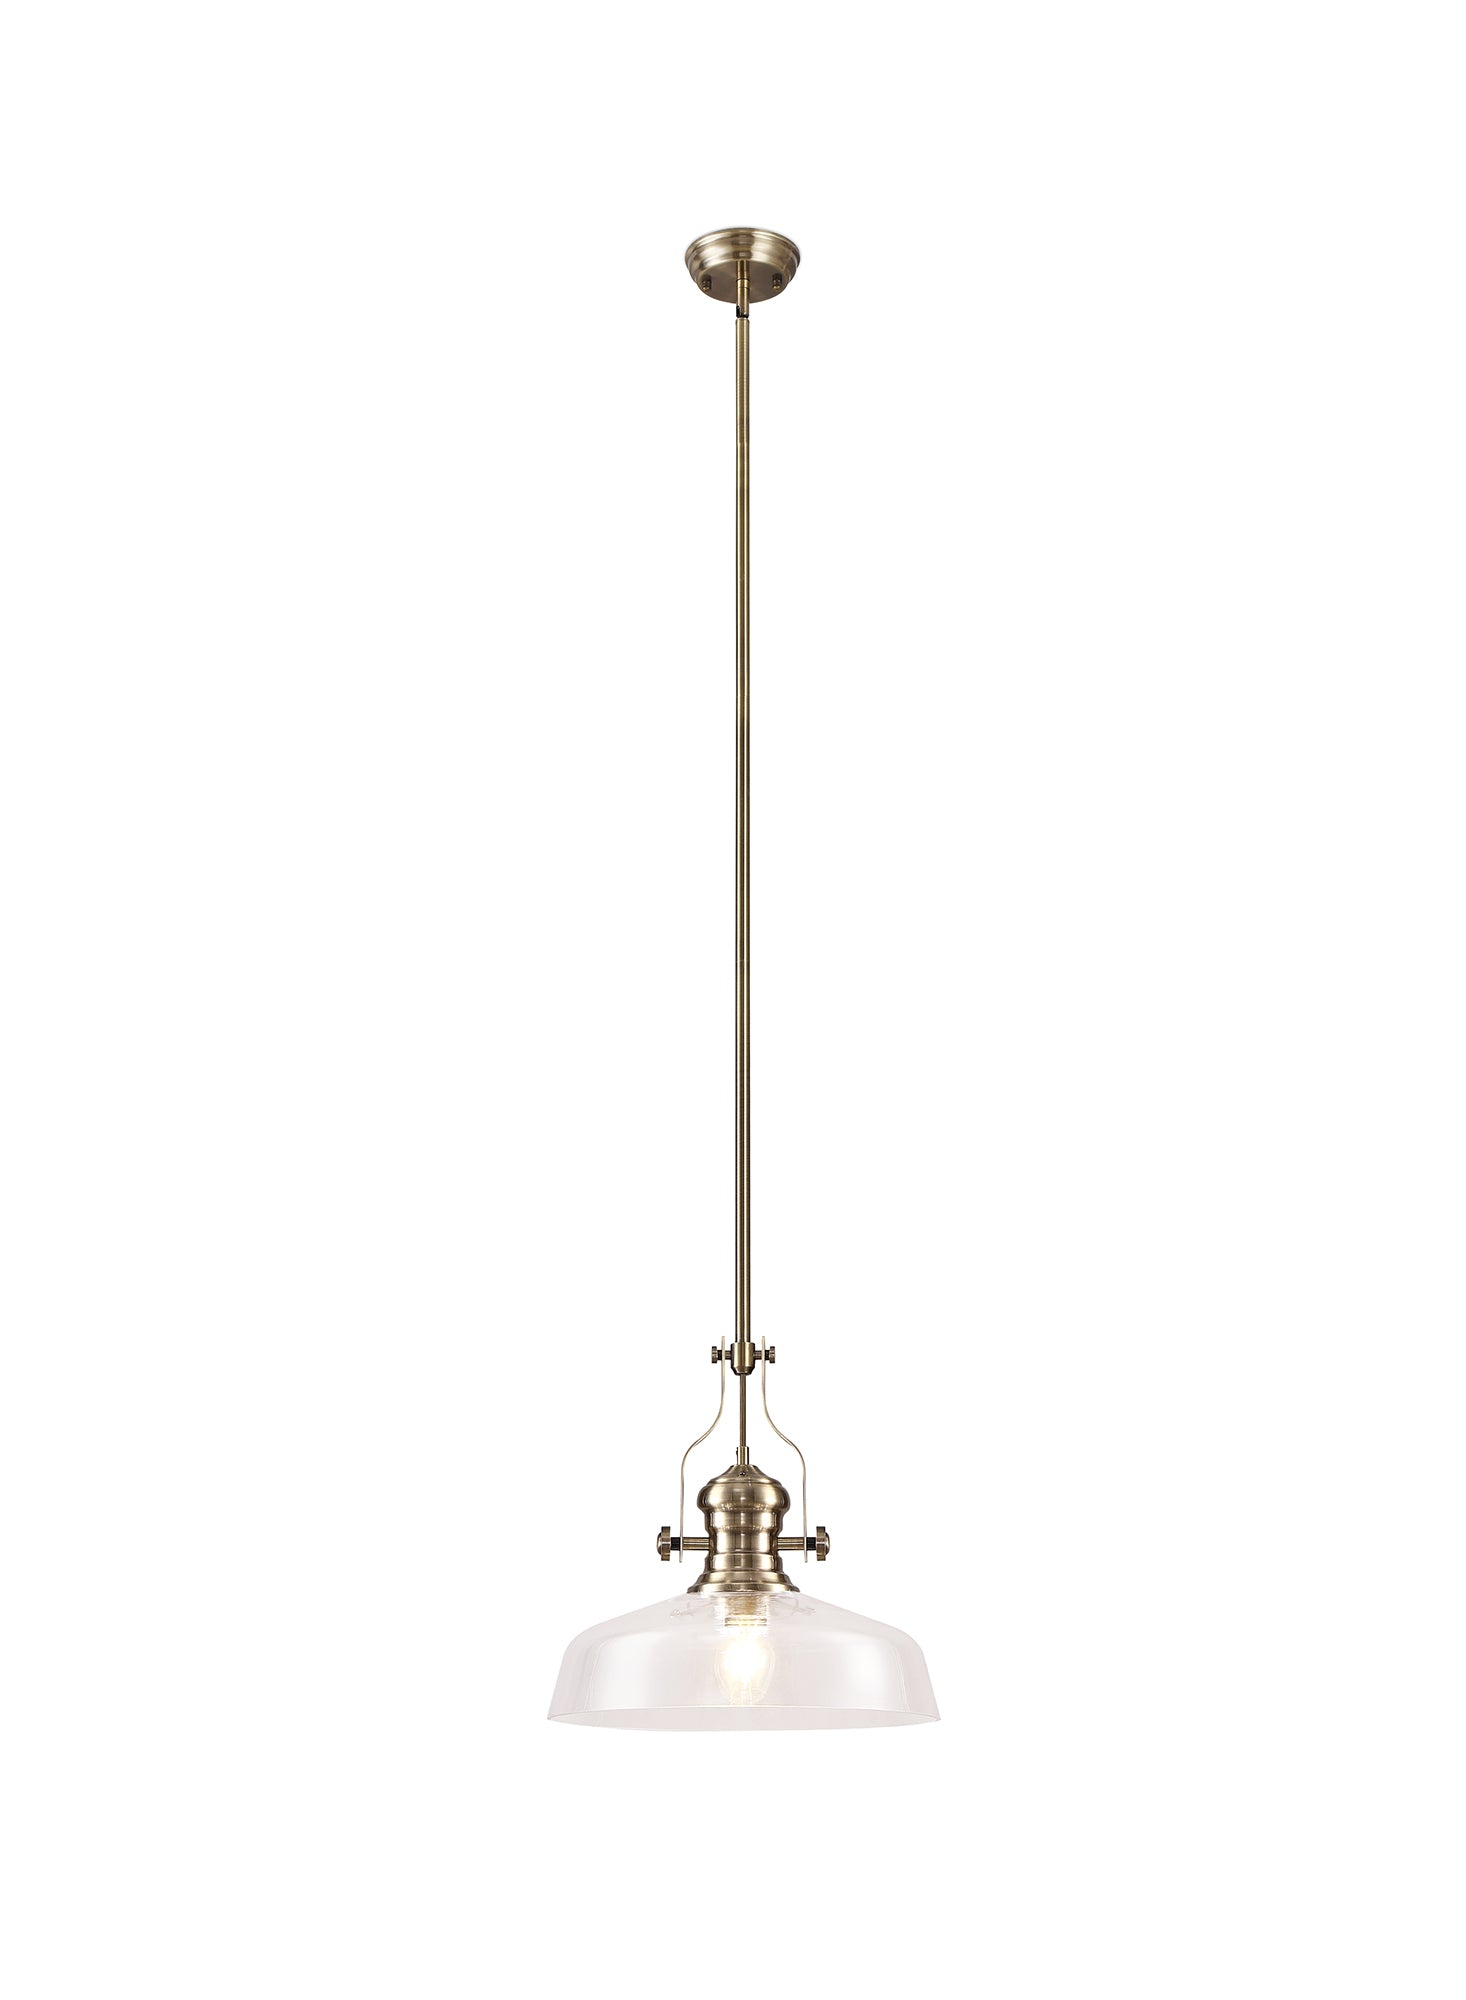 WAREHOUSE Pendant With 38cm Flat Round Shade, 1 x E27, Antique Brass/Clear Glass